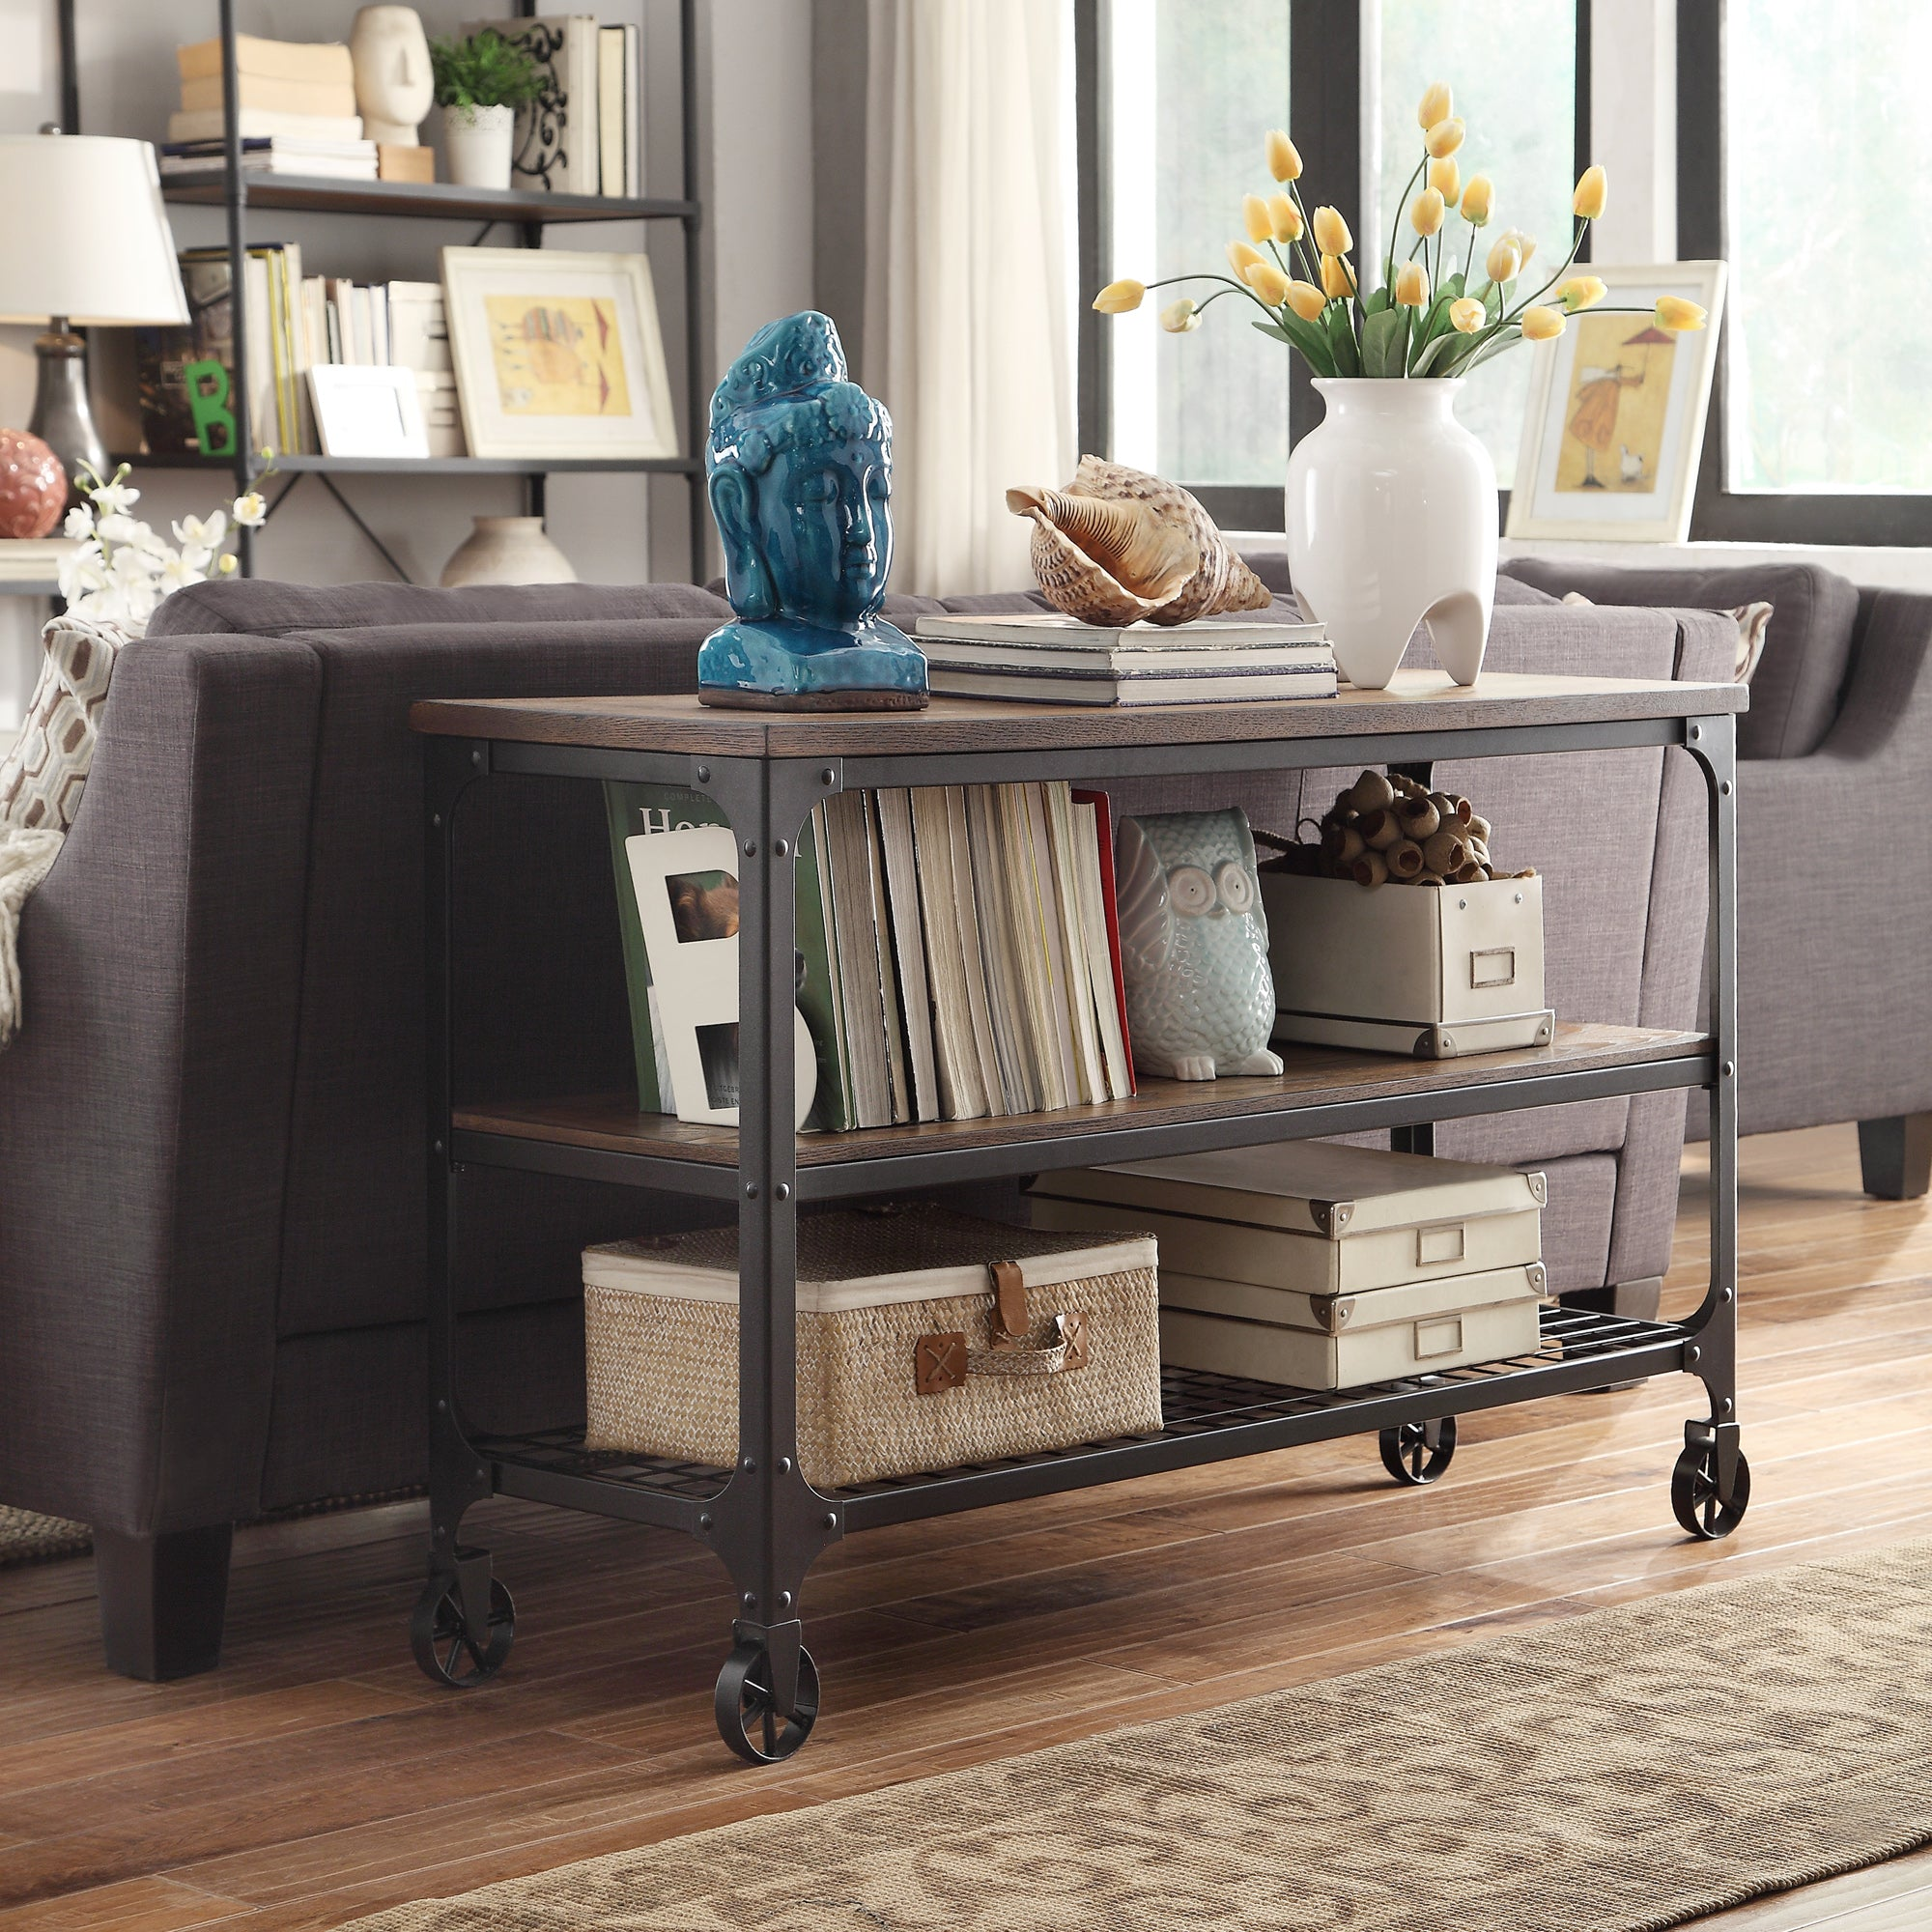 Industrial Modern Rustic TV Stand Console Table